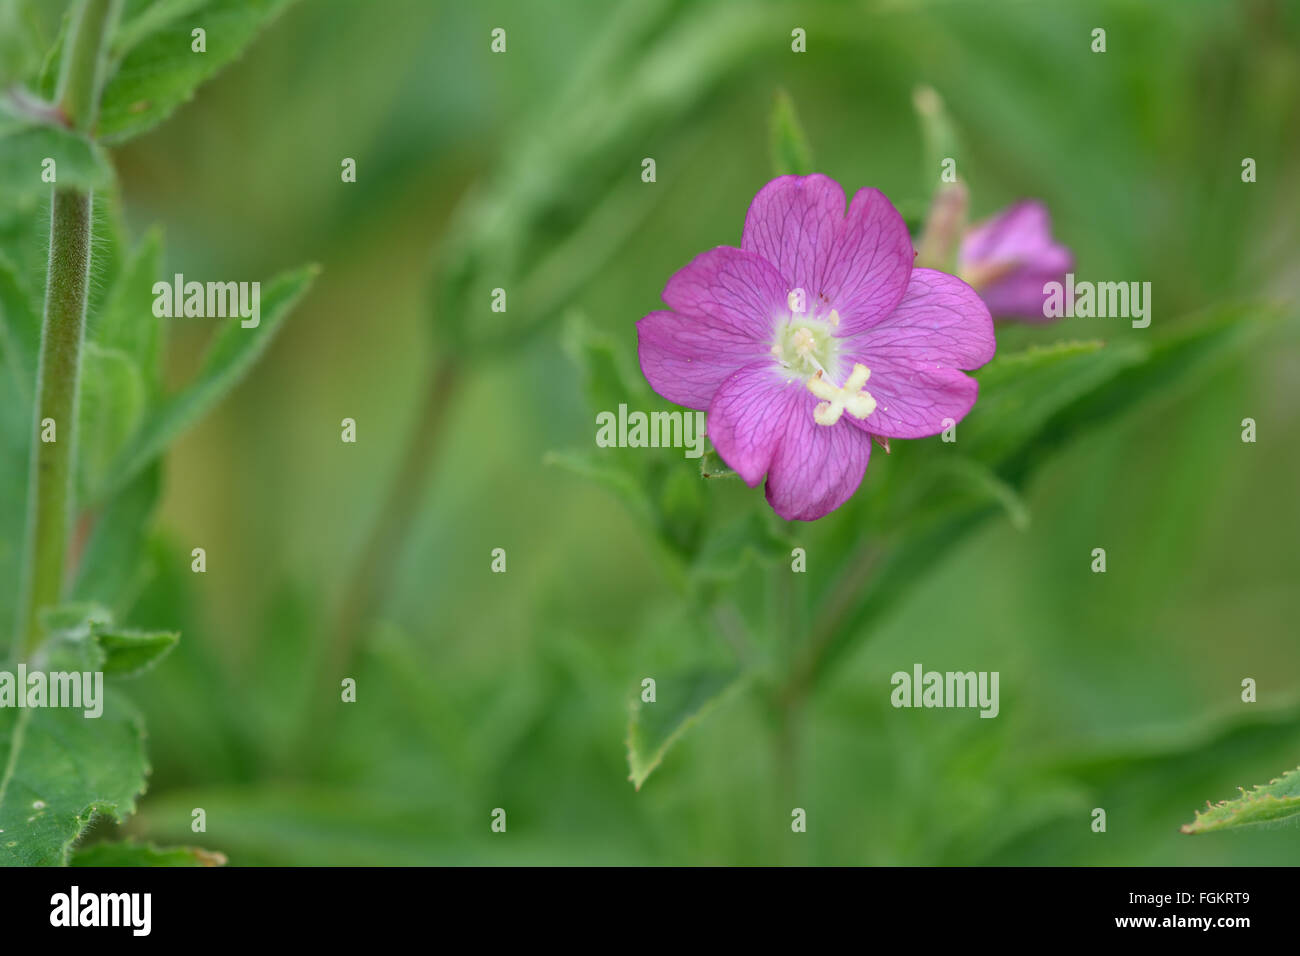 Great willowherb (Epilobium hirsutum). A close up of a pink flower of a large plant in the family Onagraceae - Stock Image